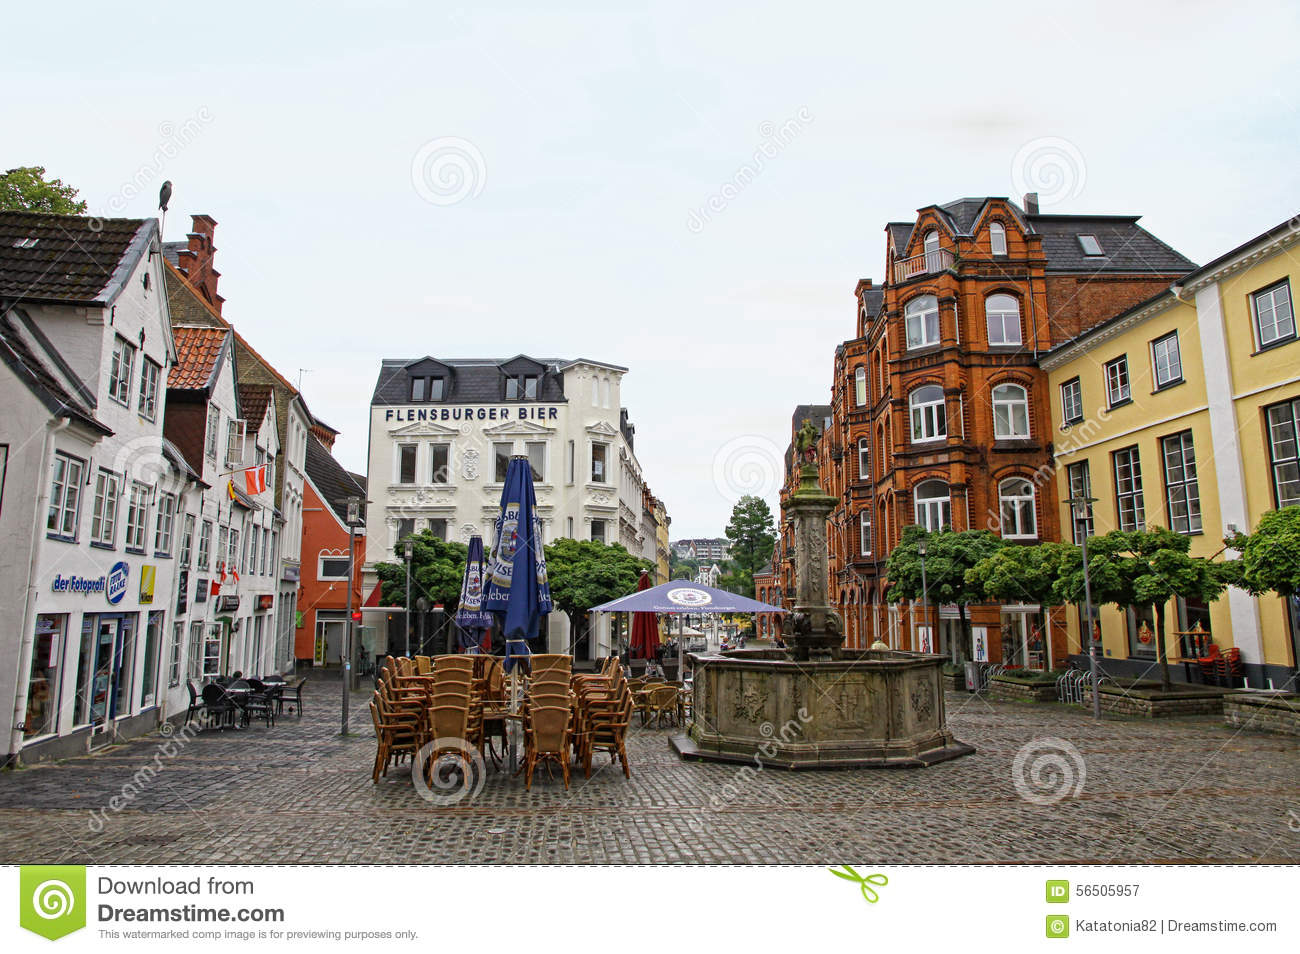 vierkant in centrum van flensburg stad duitsland redactionele fotografie afbeelding bestaande. Black Bedroom Furniture Sets. Home Design Ideas